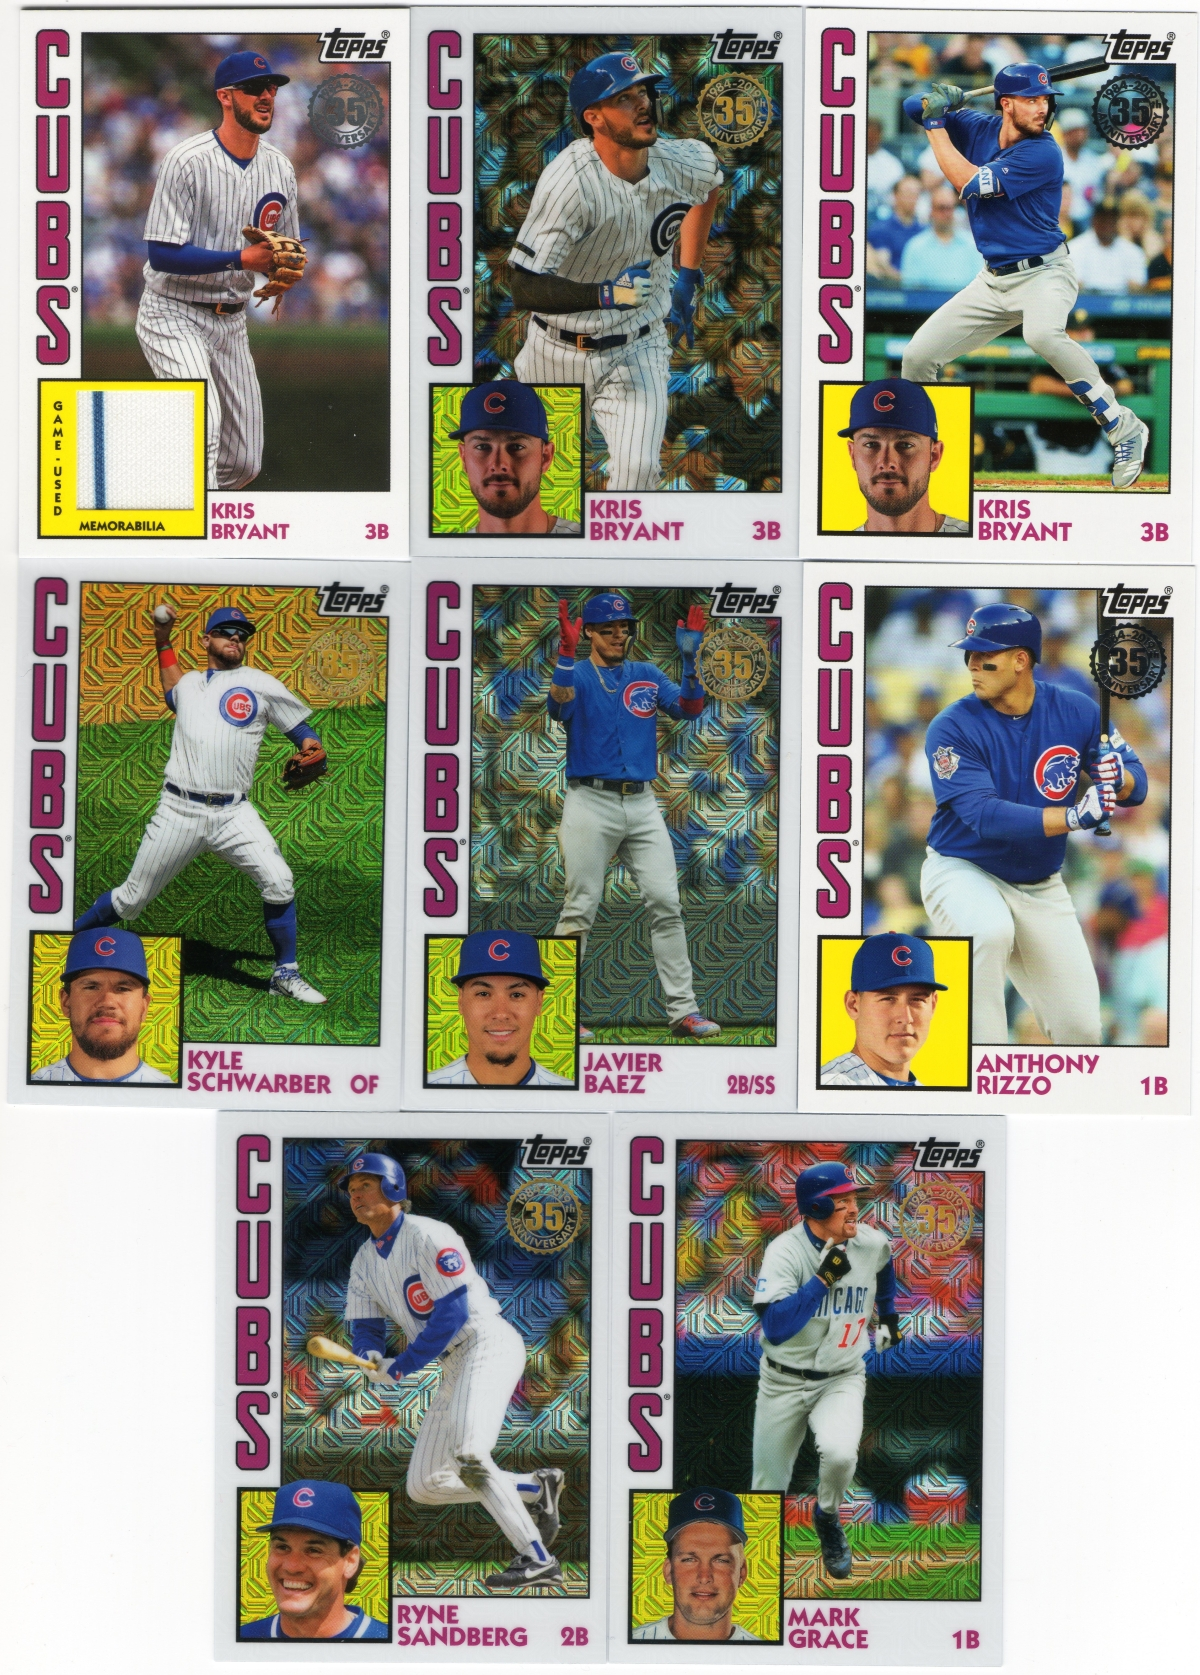 + 1984 Chrome Silver Pack 2019 Topps Series 1 COMPLETE SET *50 cards* 1-50 Soto